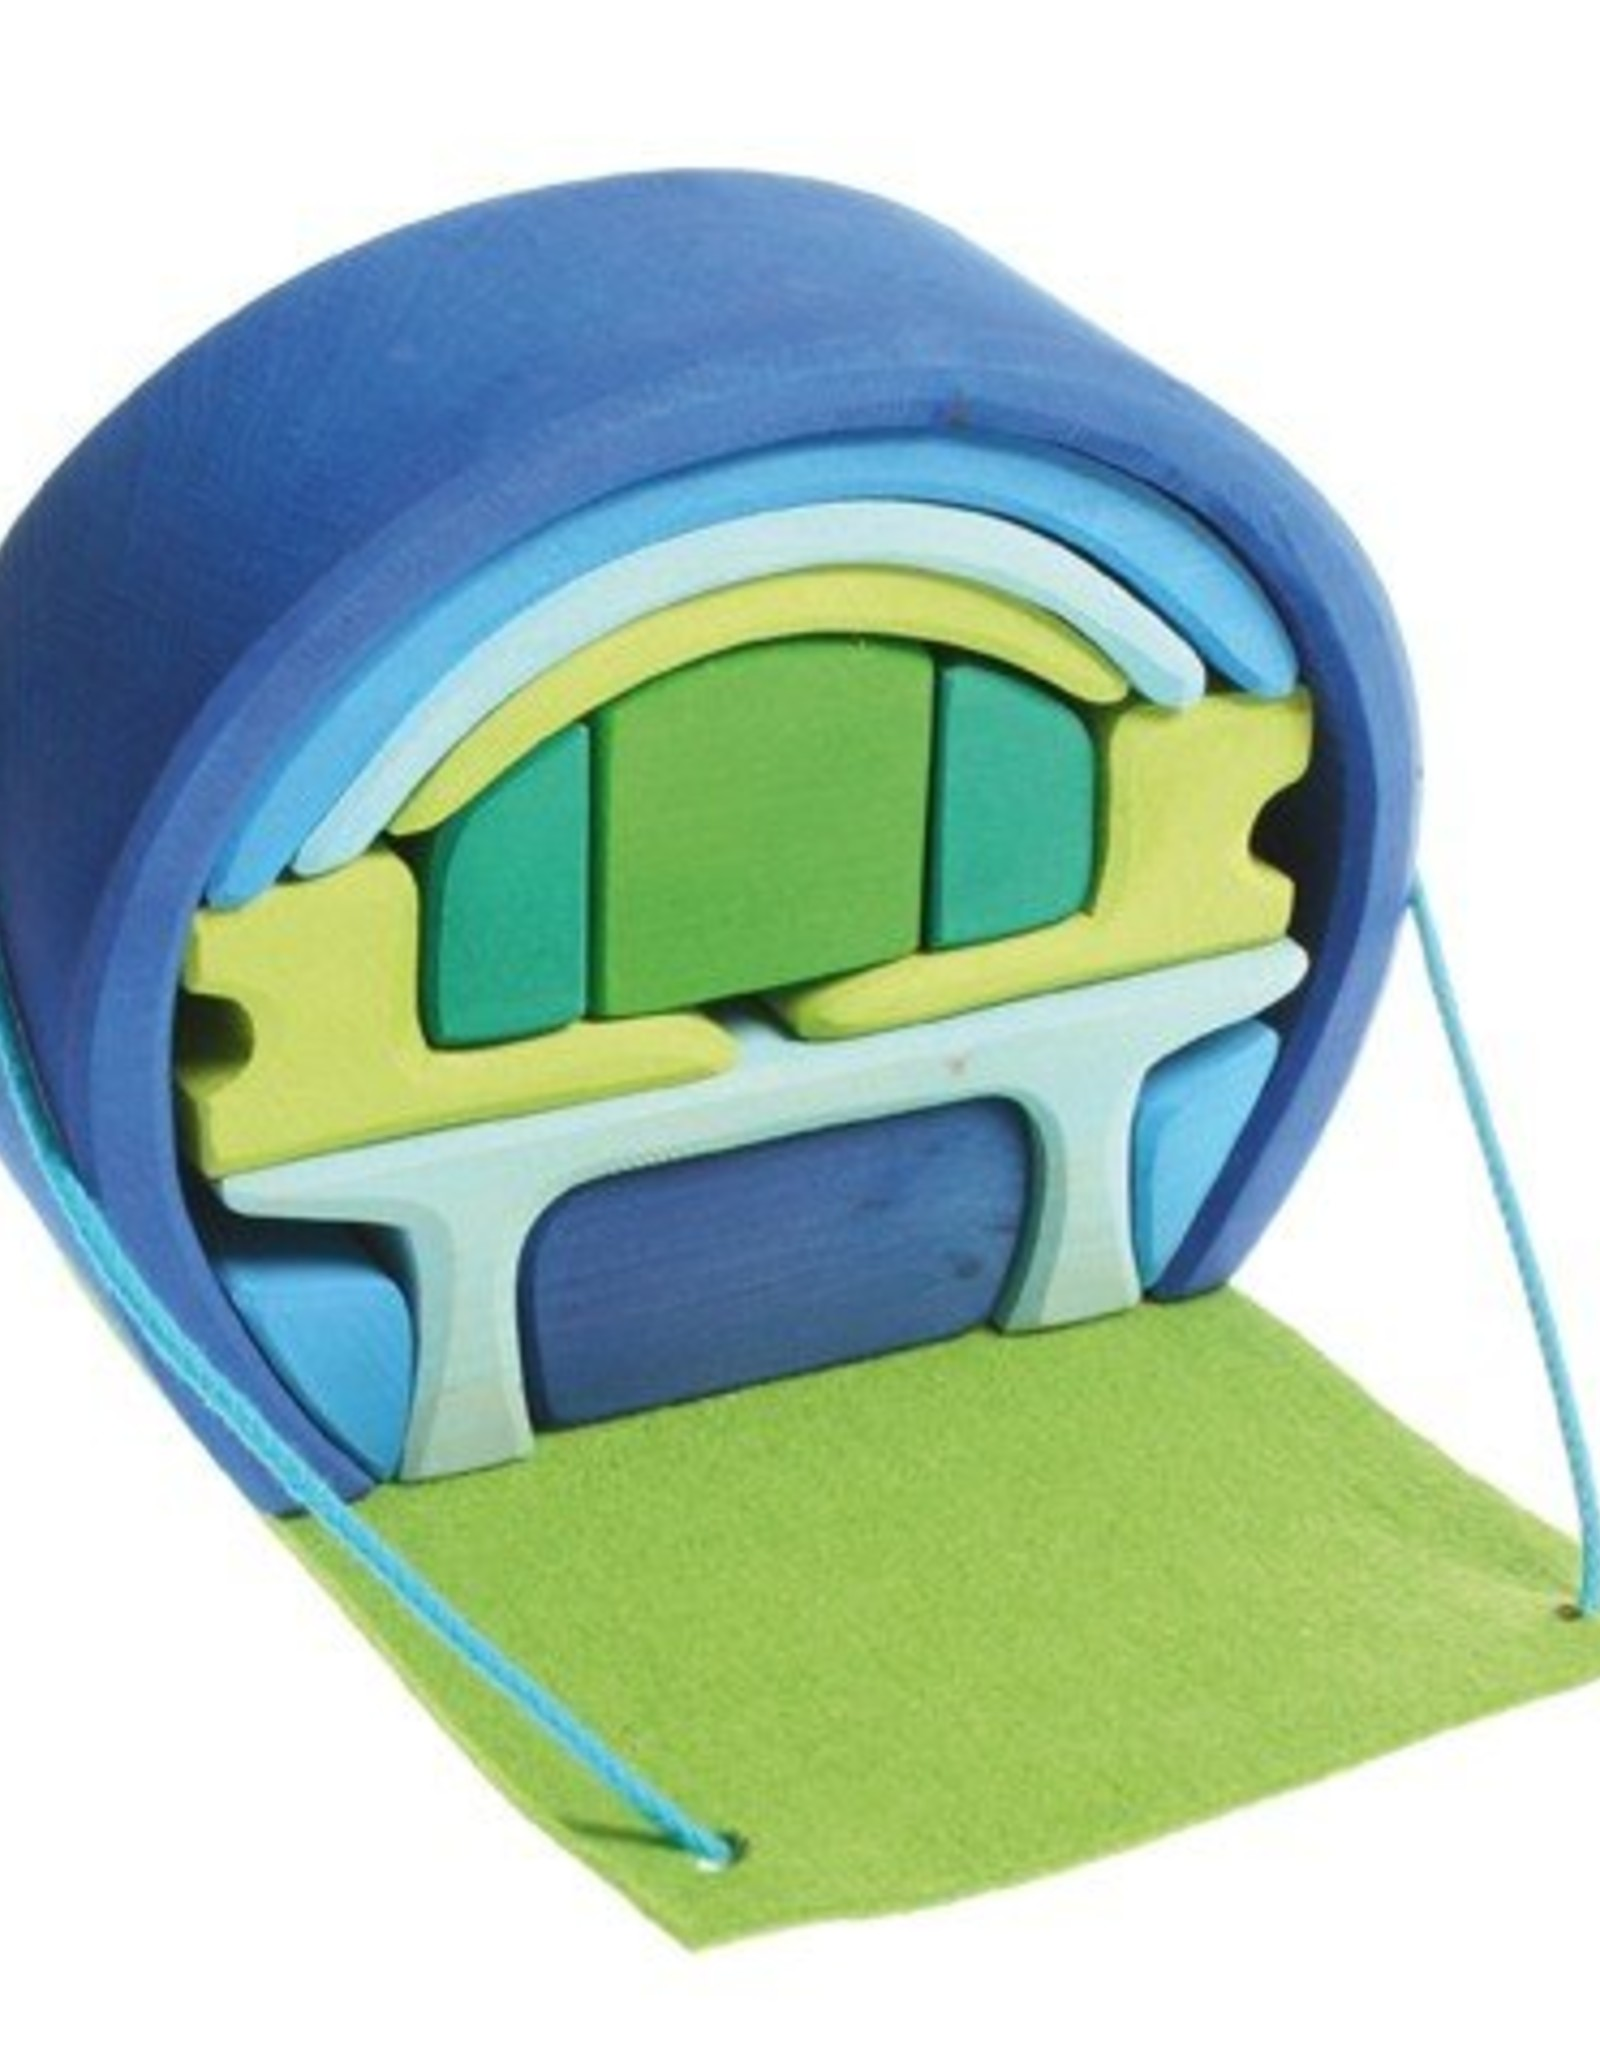 Grimm's Grimm's - Mobile Home - Blue/Green